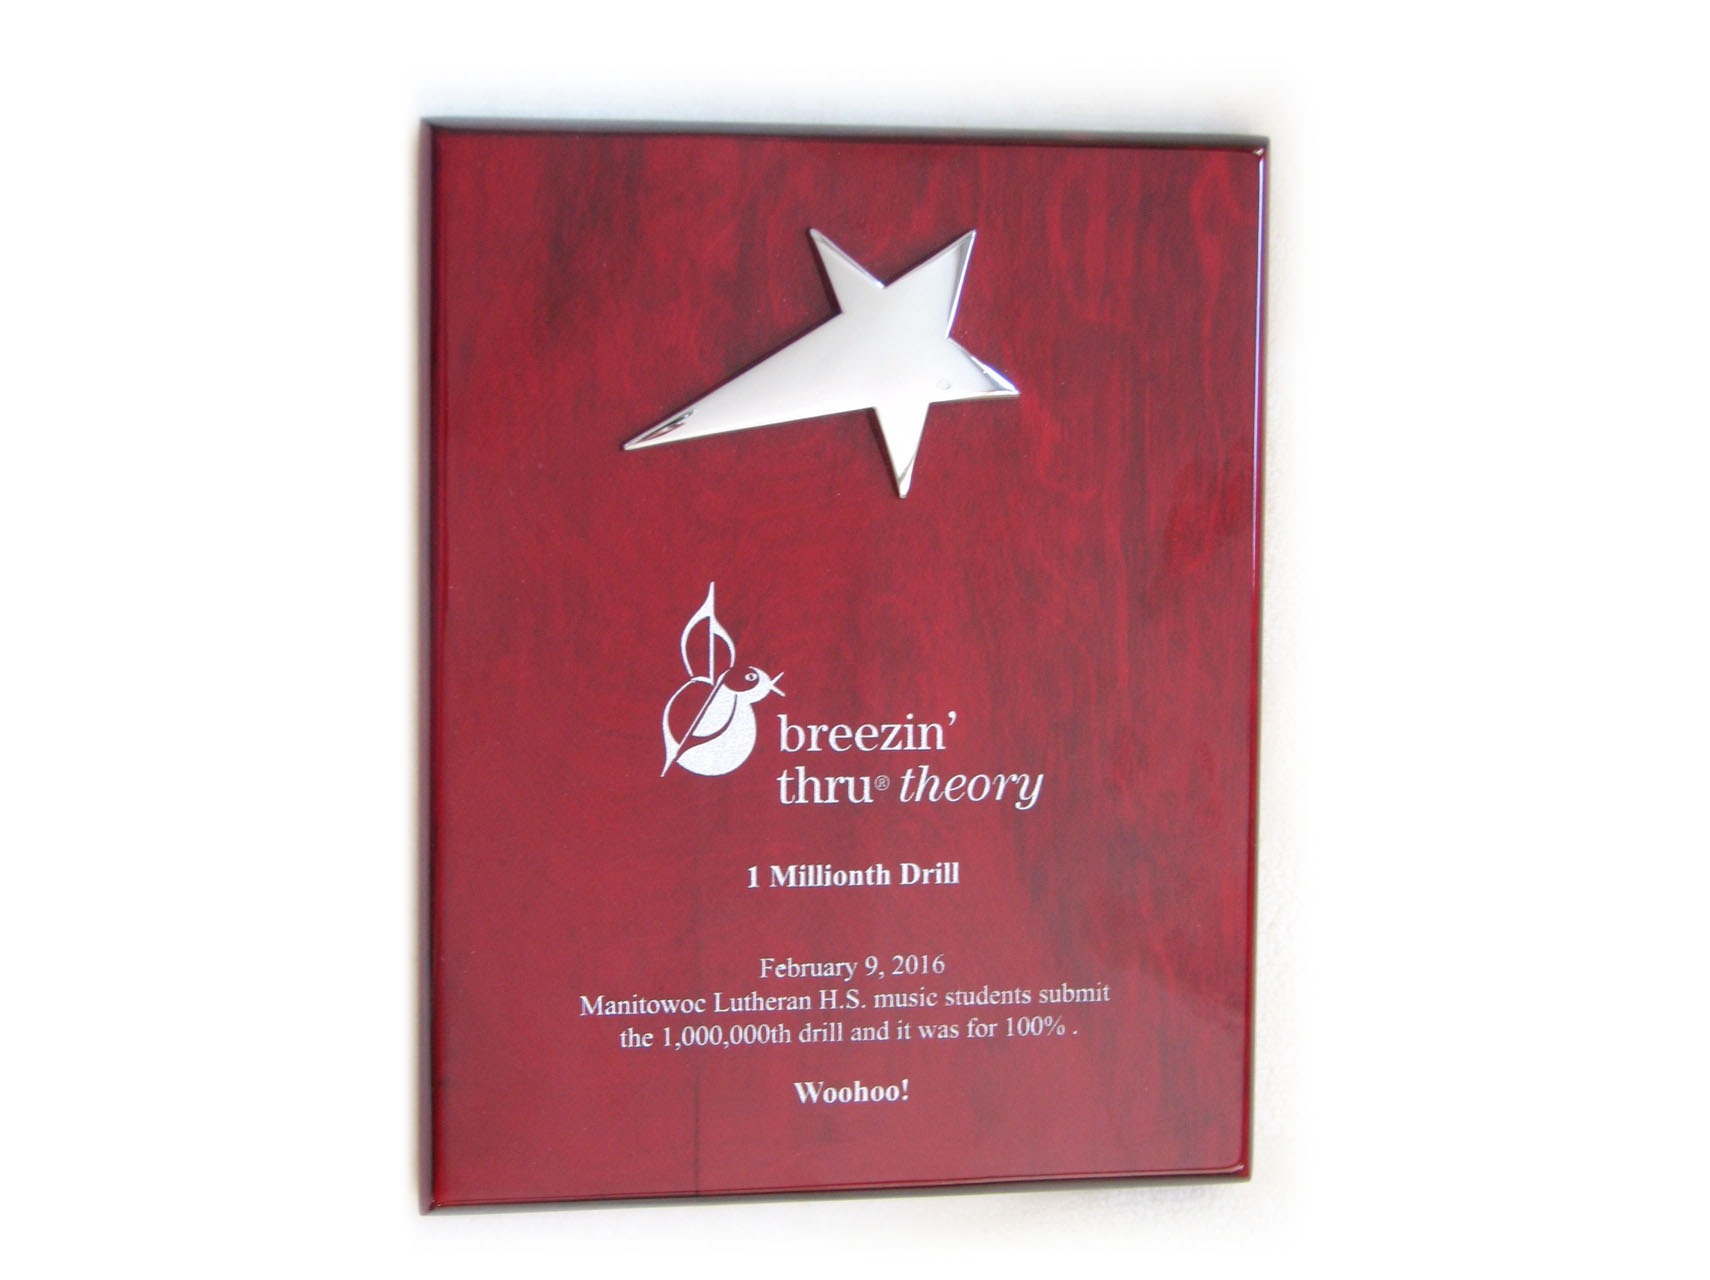 "<p>Manitowoc Lutheran High School has used Breezin` Thru Theory for the last 5 years as part of their Music Education program.  On February 9, 2016 MLHS music students submitted the 1,000,000th drill in the BTT database <u>and</u> it was for 100%. Woohoo! A monumental moment in Breezin` Thru history and for these students!  Thank you MLHS for your continued use of Breezin Thru Theory, your commitment to music education and the impressive achievements!</p> <p><em>""We have had tremendous results with Breezin' Thru Theory and look forward to